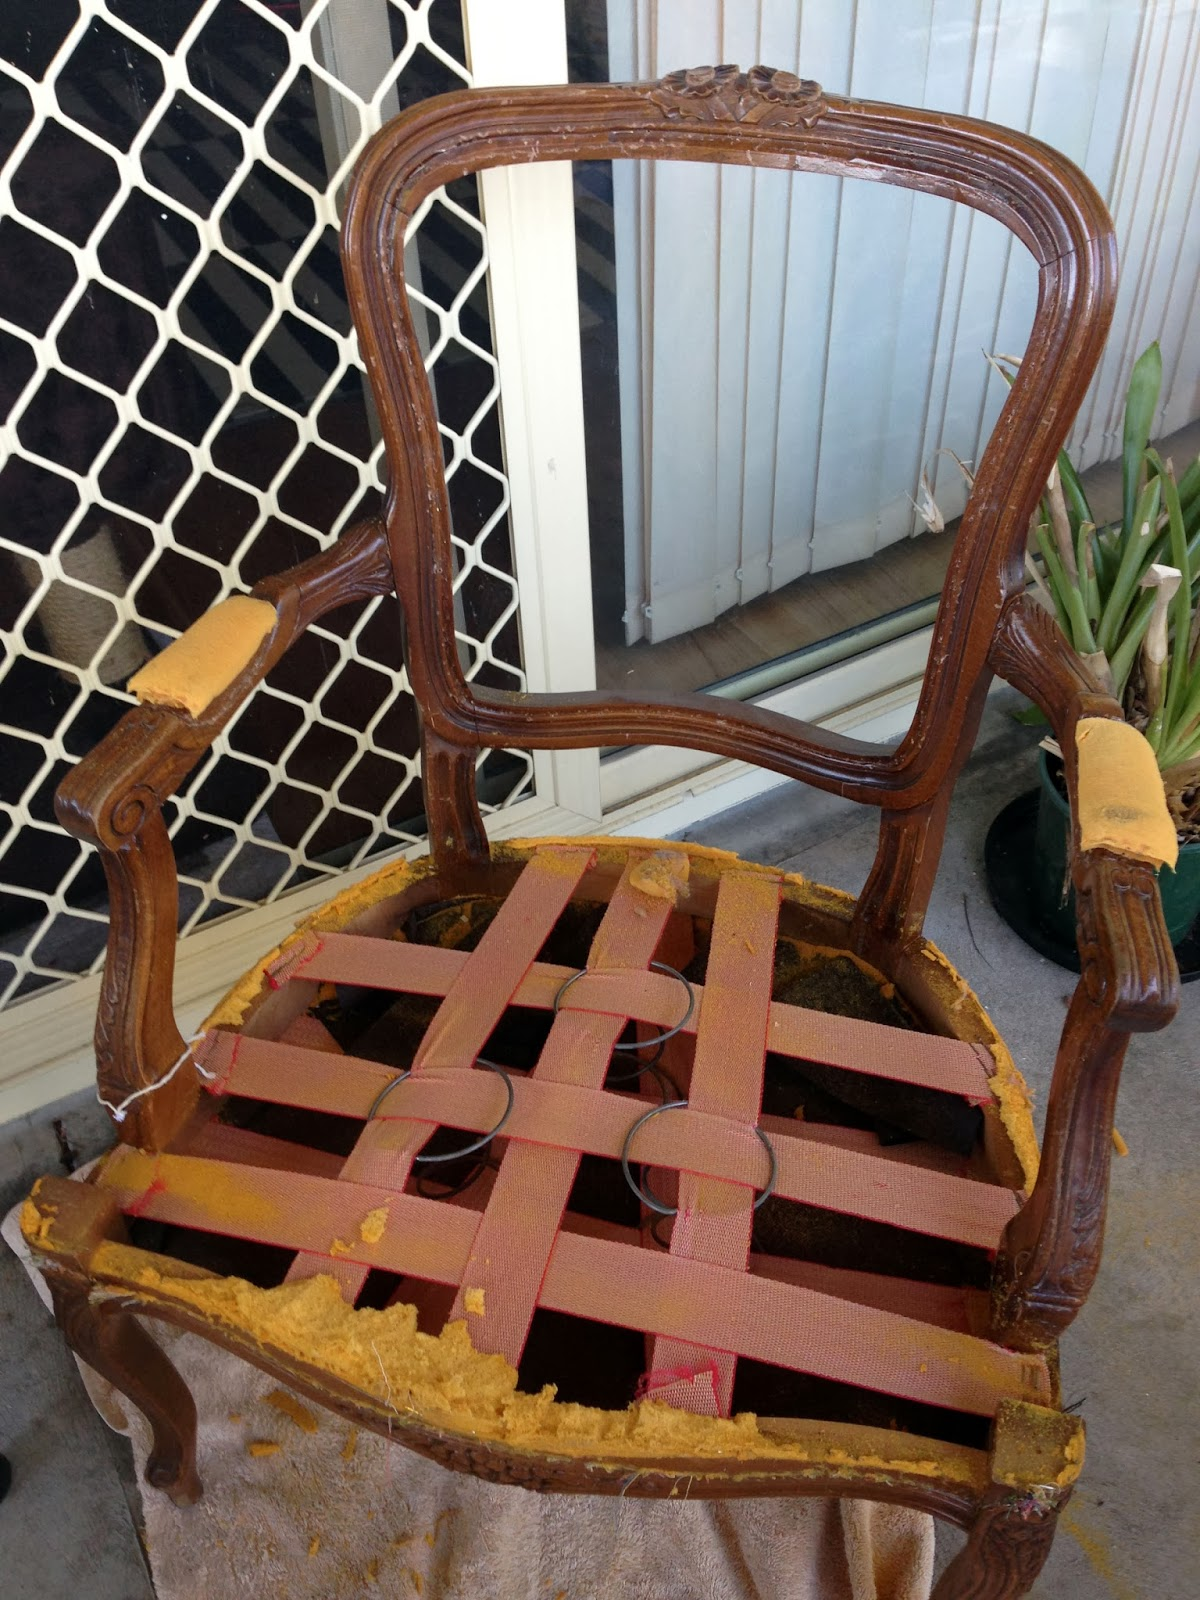 Stella Olive [DIY] A Frenchy Chic reupholstered Louis chair with